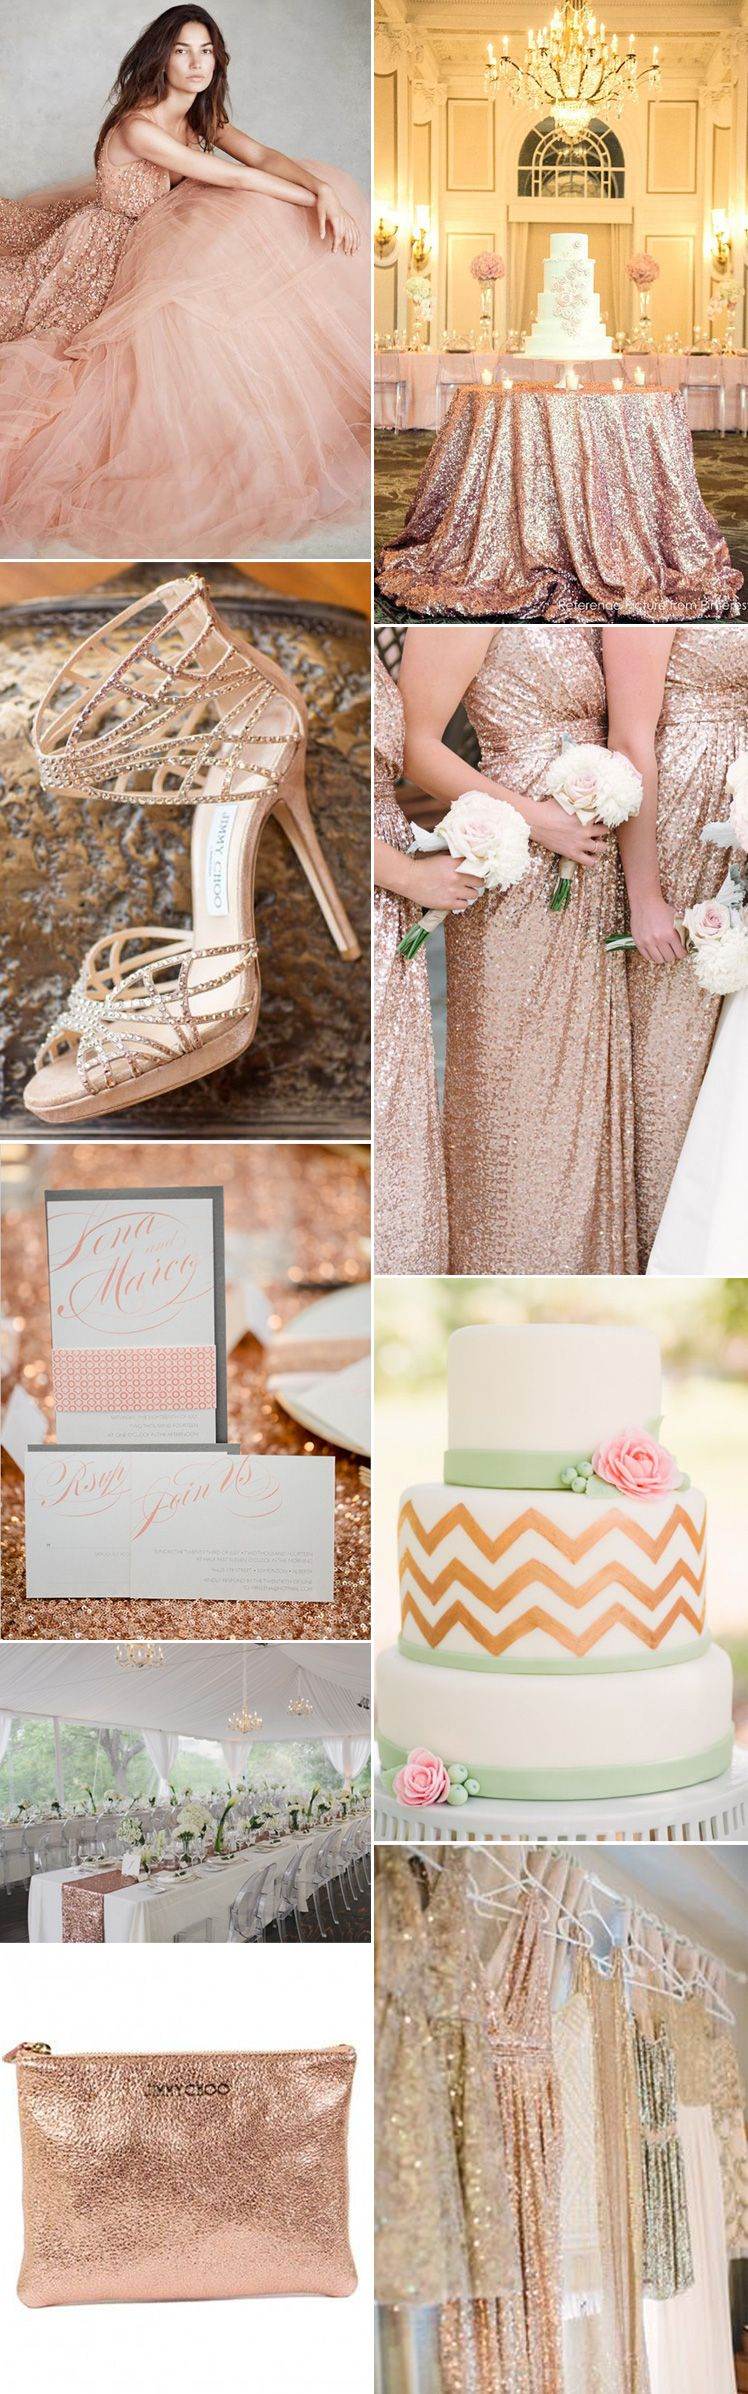 Rose gold wedding inspiration onewed rose gold ruffly wedding chair - We Love The Metallic Sparkle Of A Rose Gold Wedding Theme Gs Inspiration At Glitzy